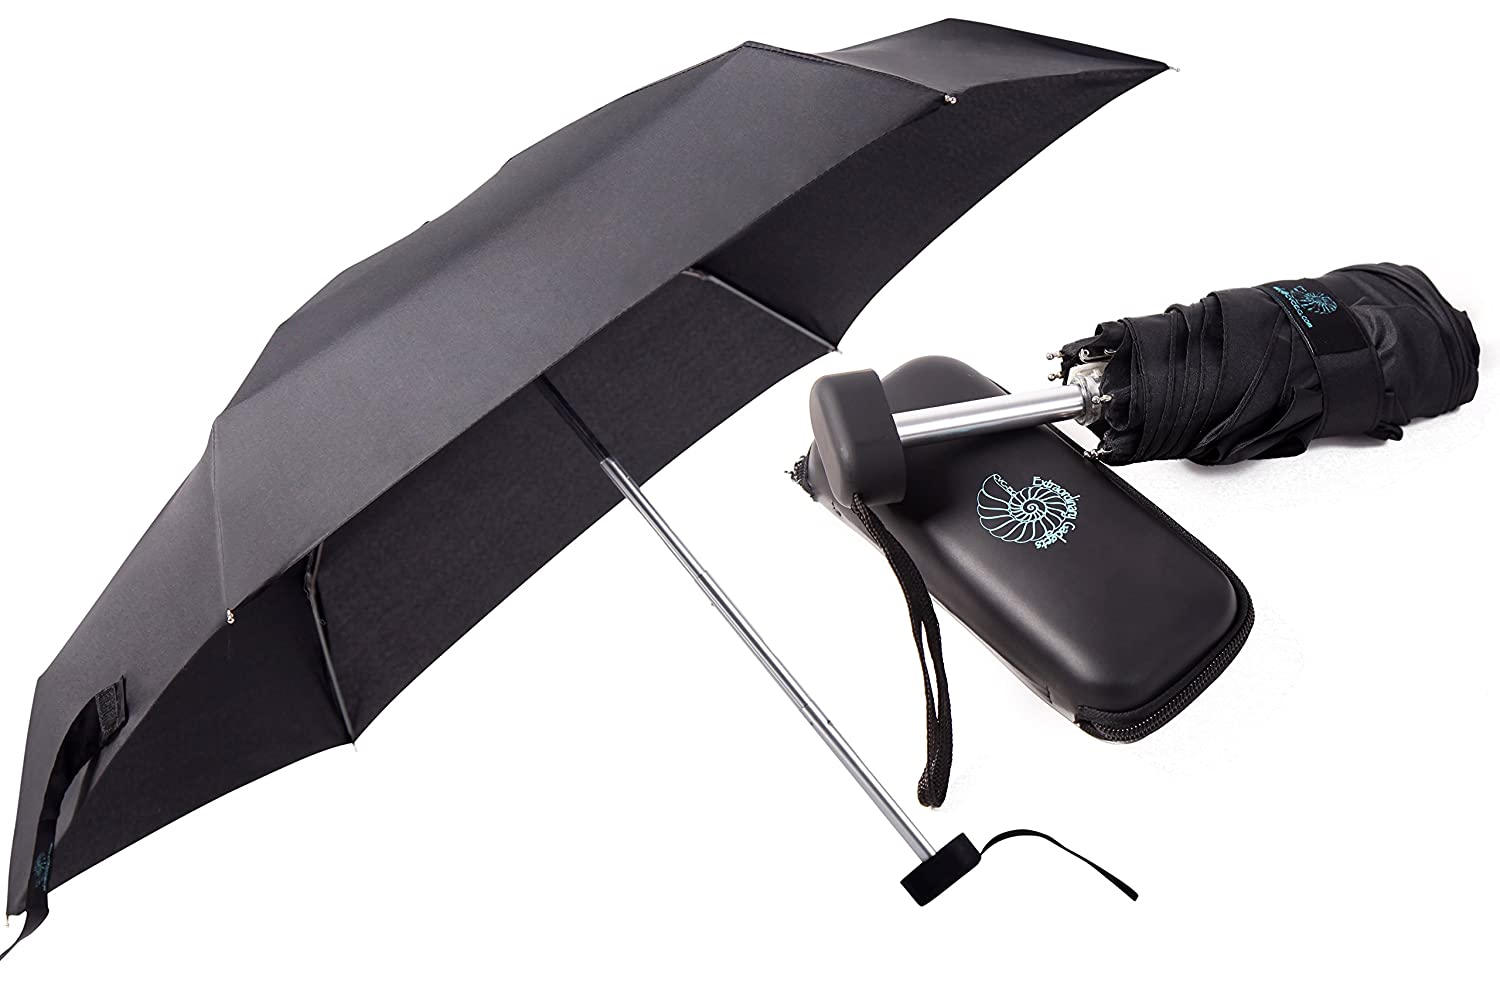 CVC-EG Compact Umbrella, Mini Umbrella - Small Umbrella for Travel - Pocket-Size Perfect for Purse, Backpack - Waterproof Case and Fabric Case